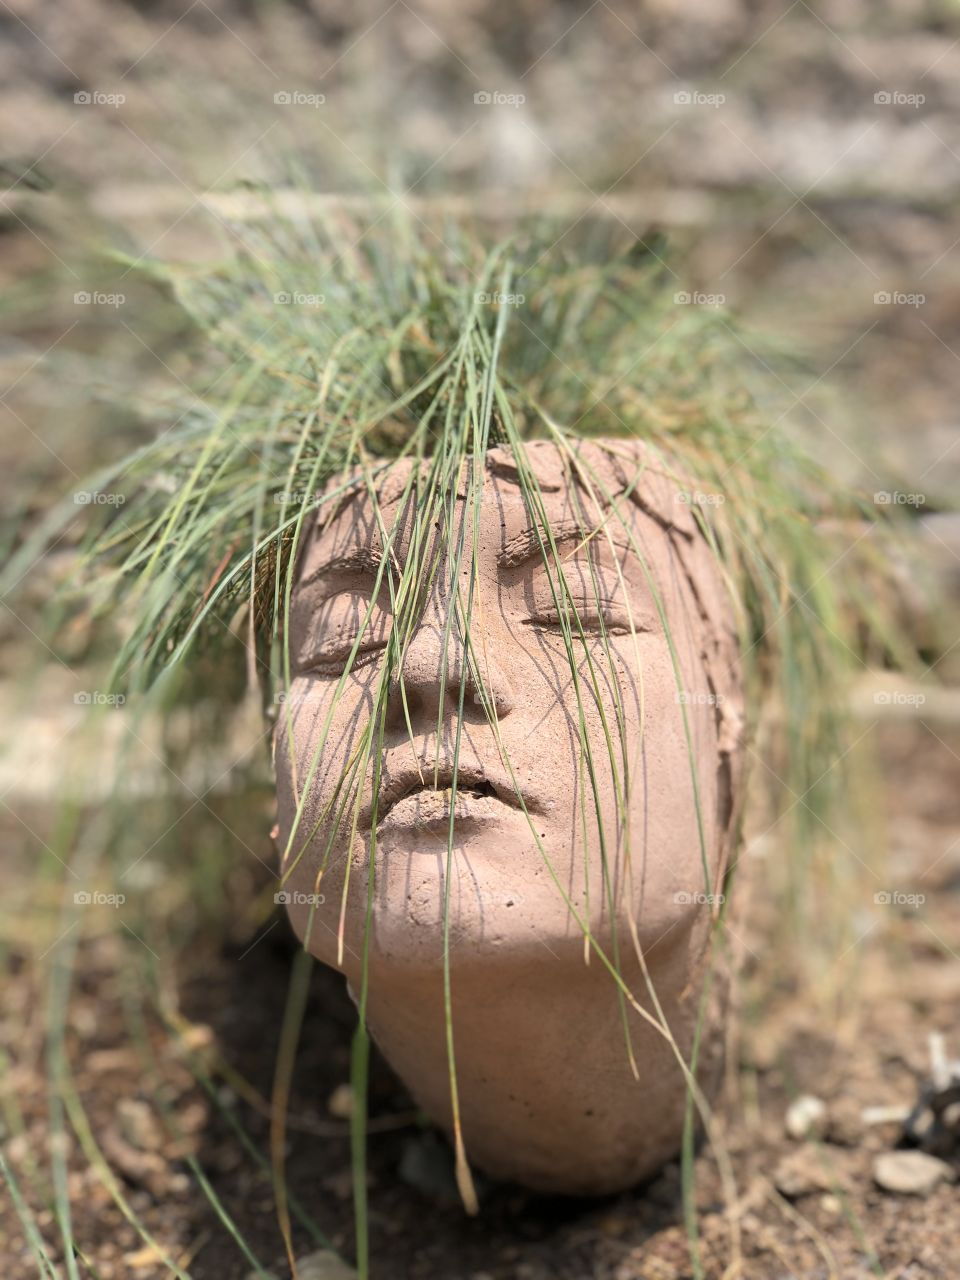 Plant that looks like hair growing out or a ceramic container with a face.